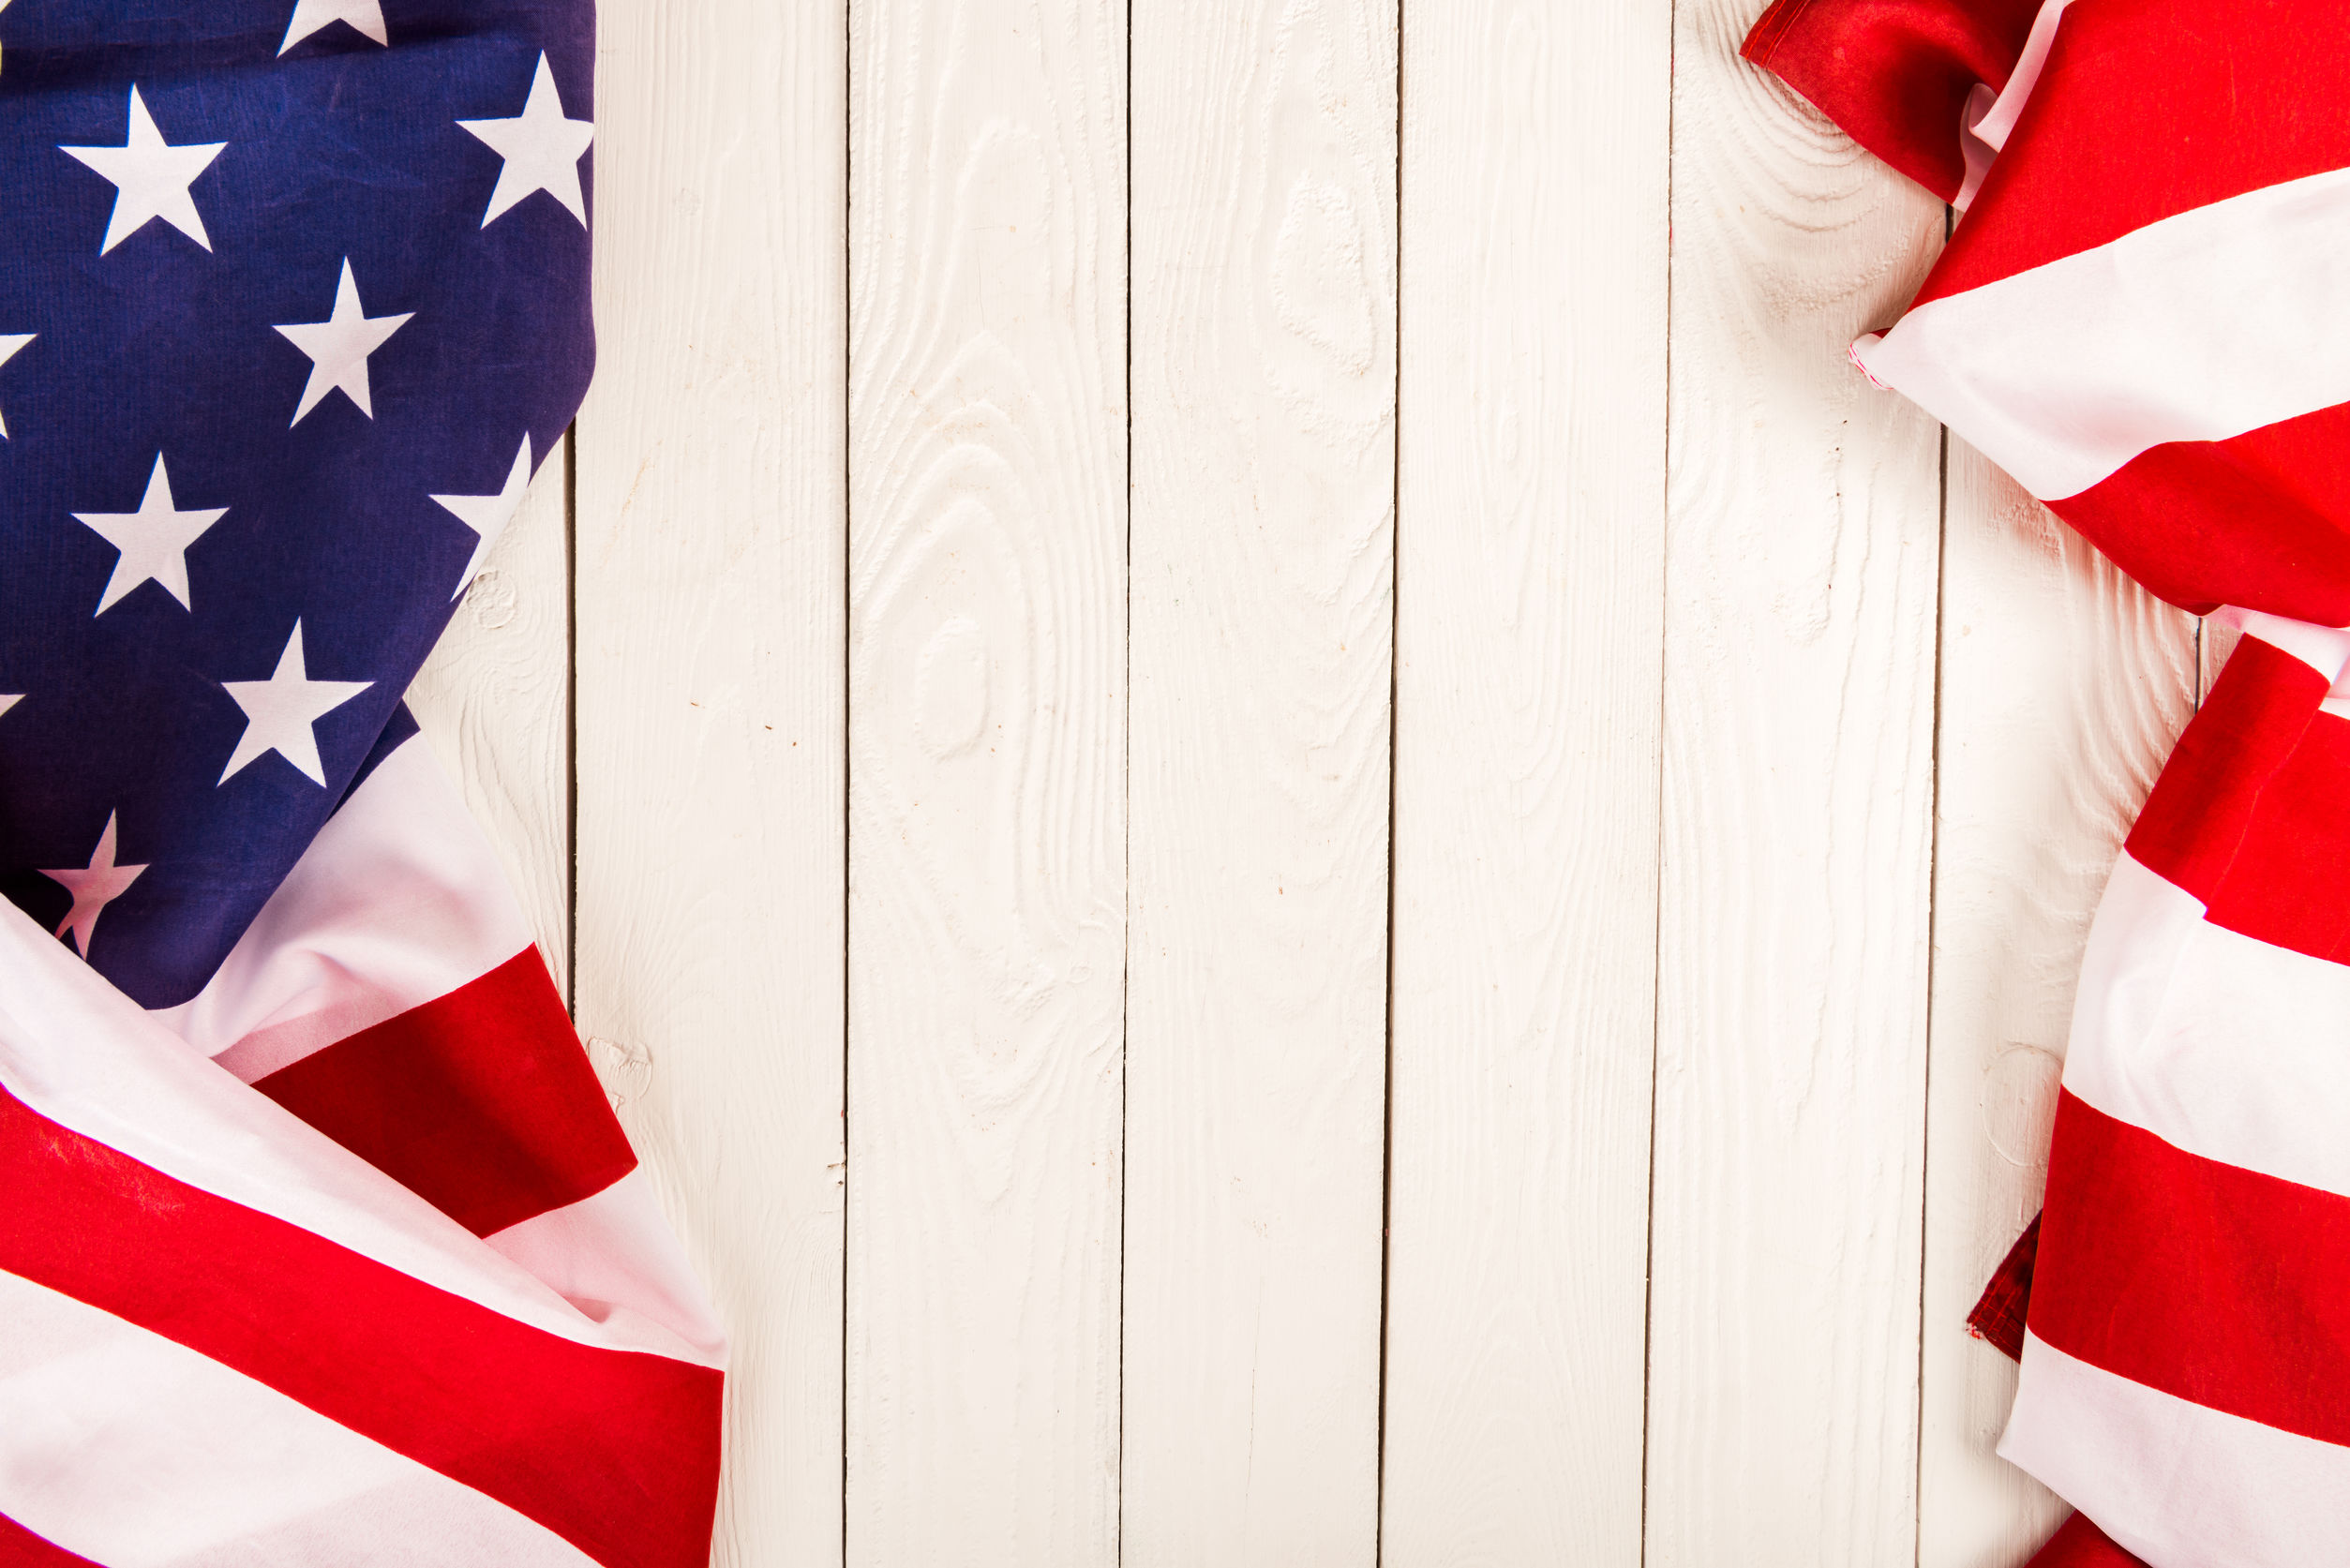 American flag on white wooden background